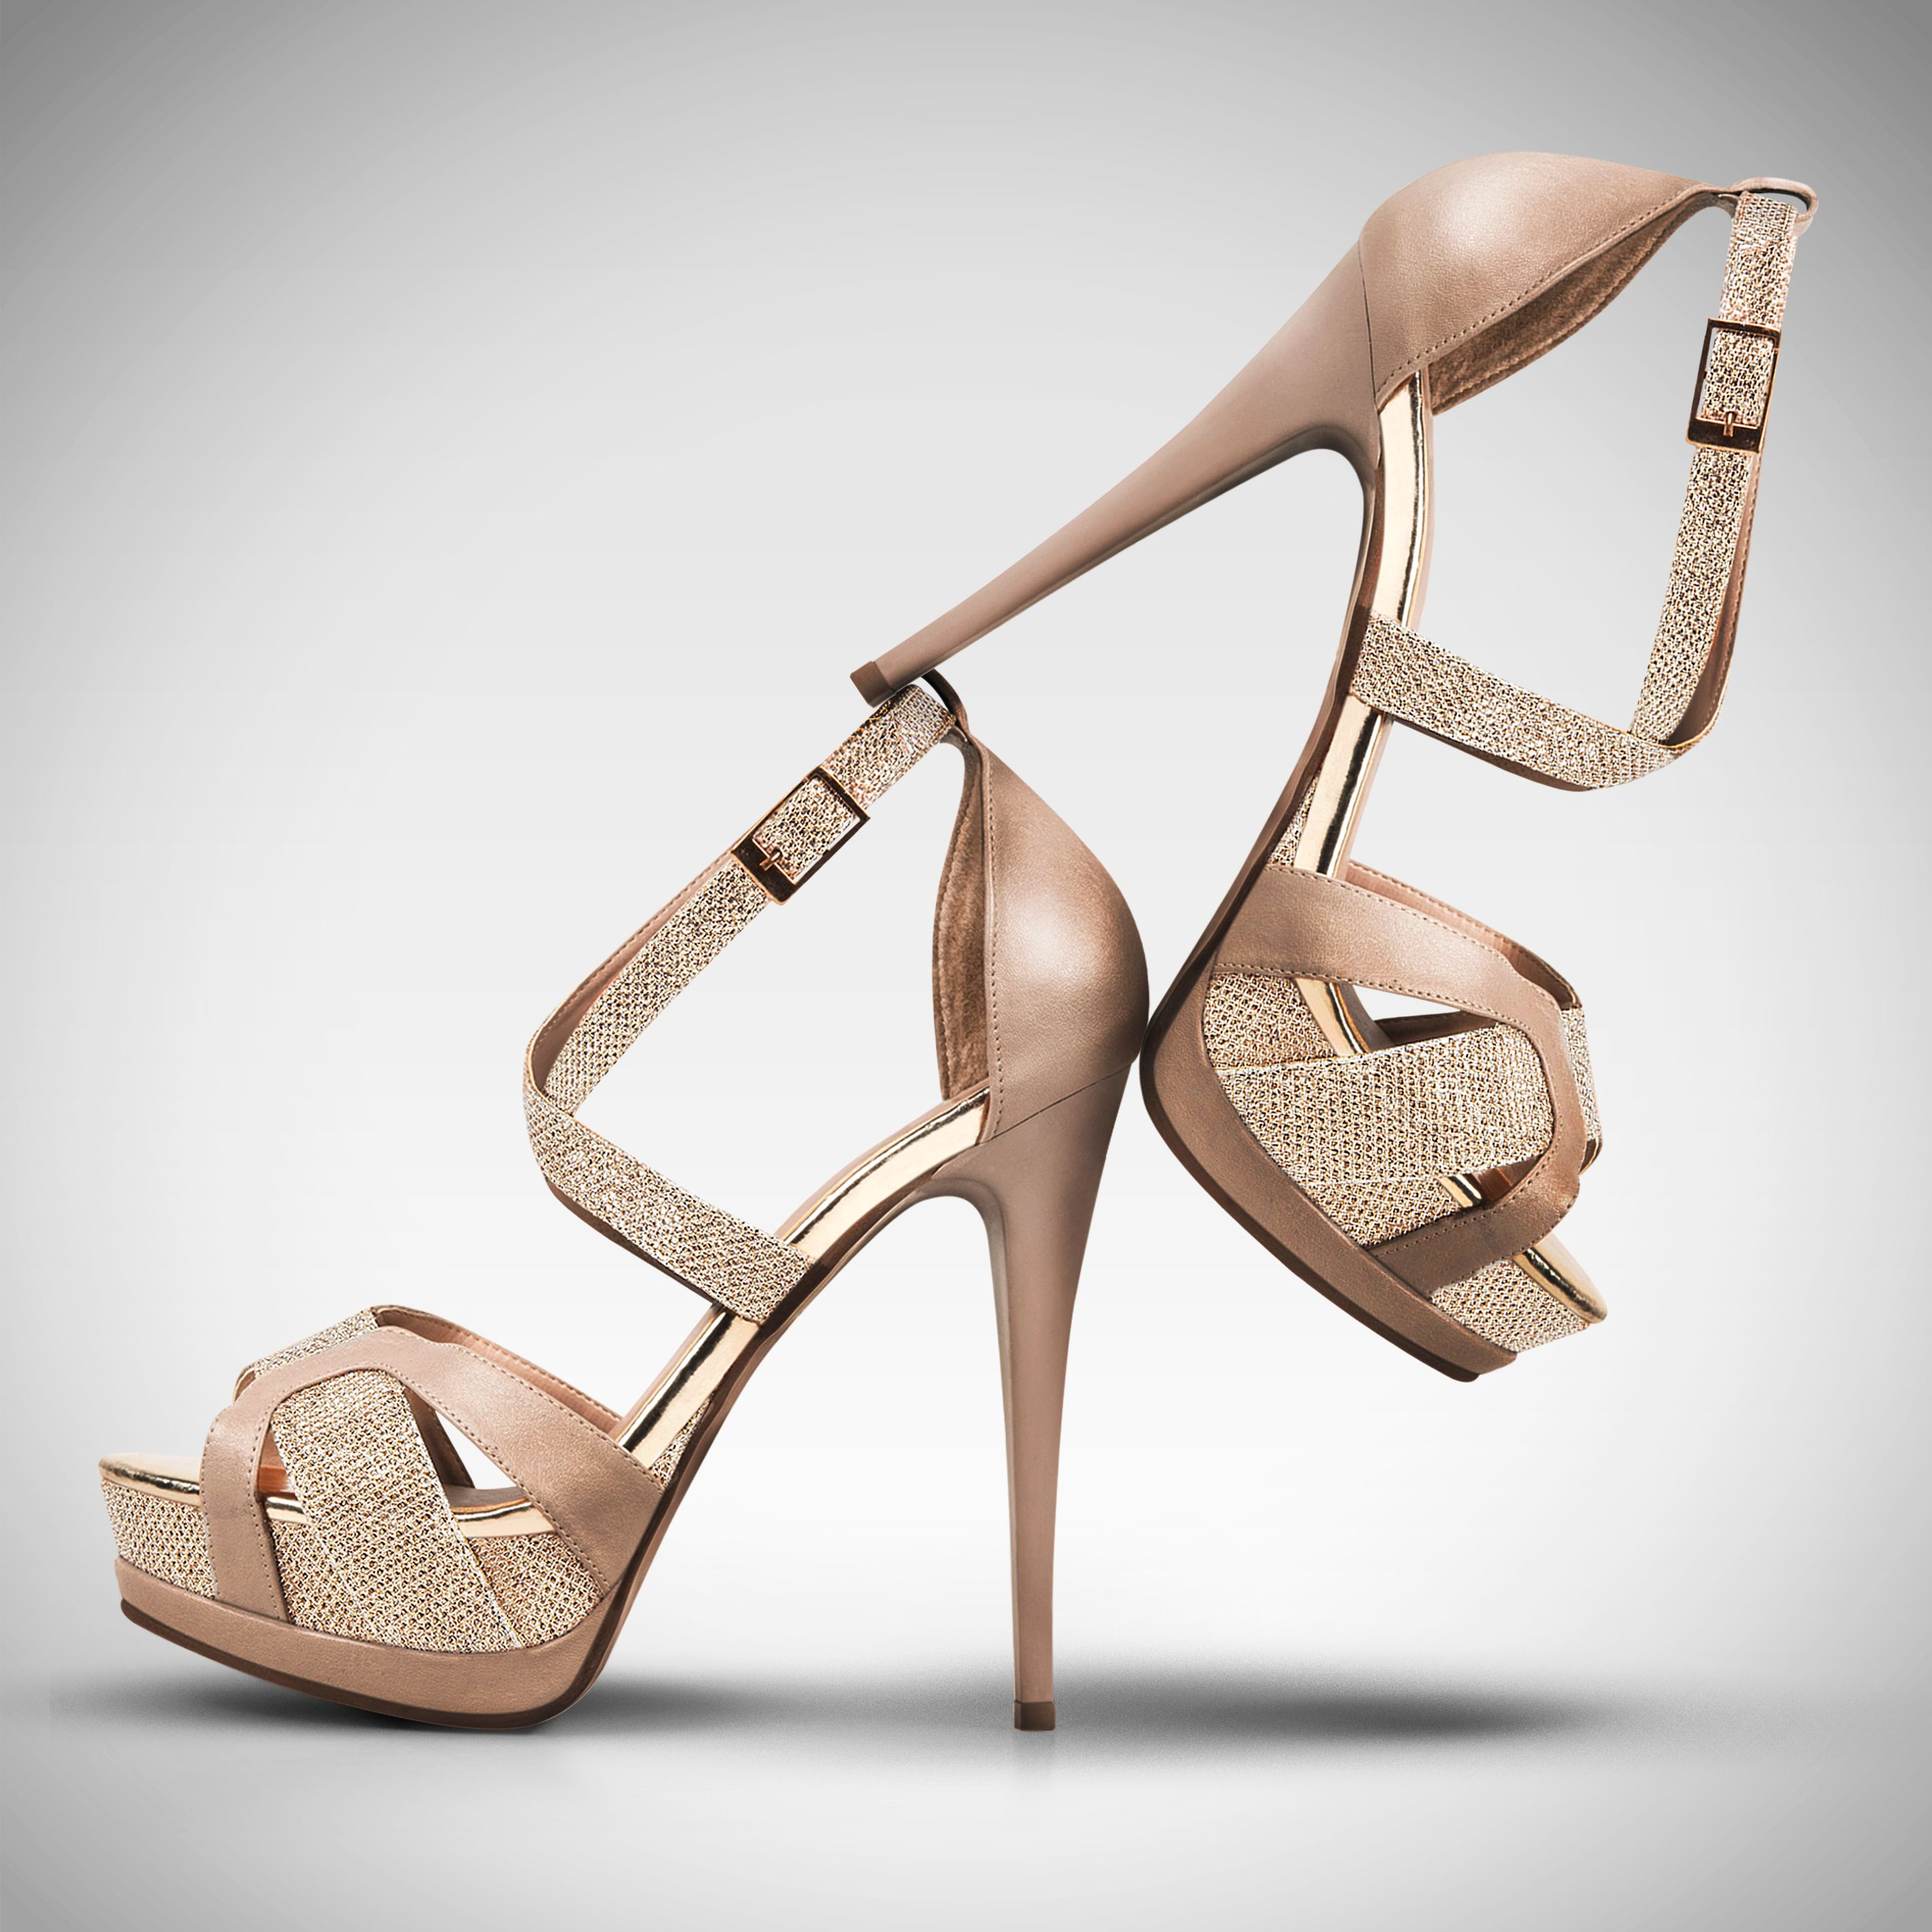 Oh So Innocent Square Toe Heel Sandals - Nude, Shoes